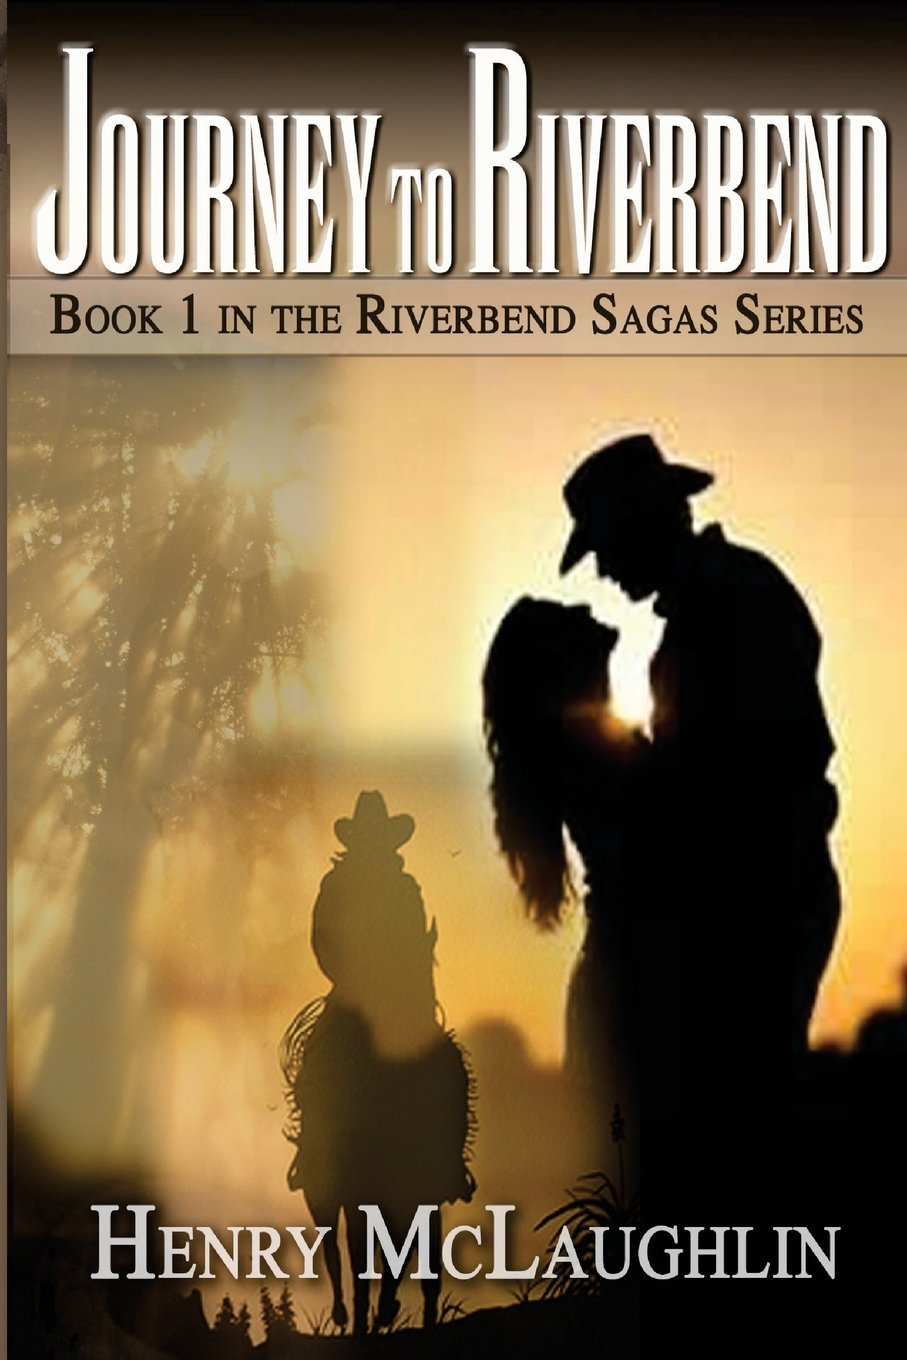 Journey to Riverbend: Book 1 in the Riverbend Saga Series